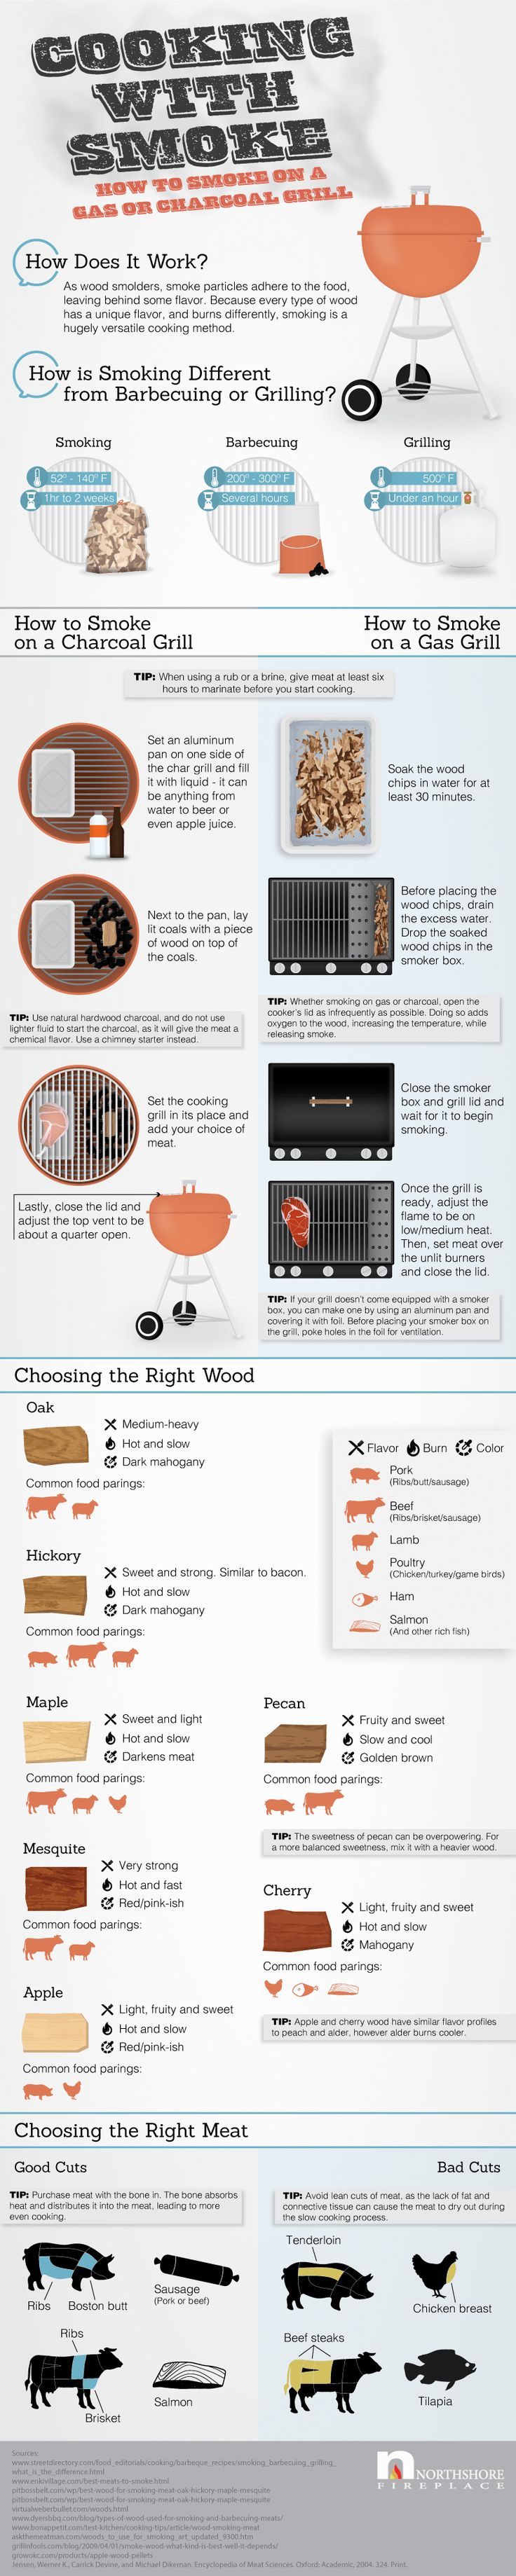 Homemade wooden meat smoker youtube - Learn How To Smoke Meats On A Gas Or Charcoal Grill With This Infographic